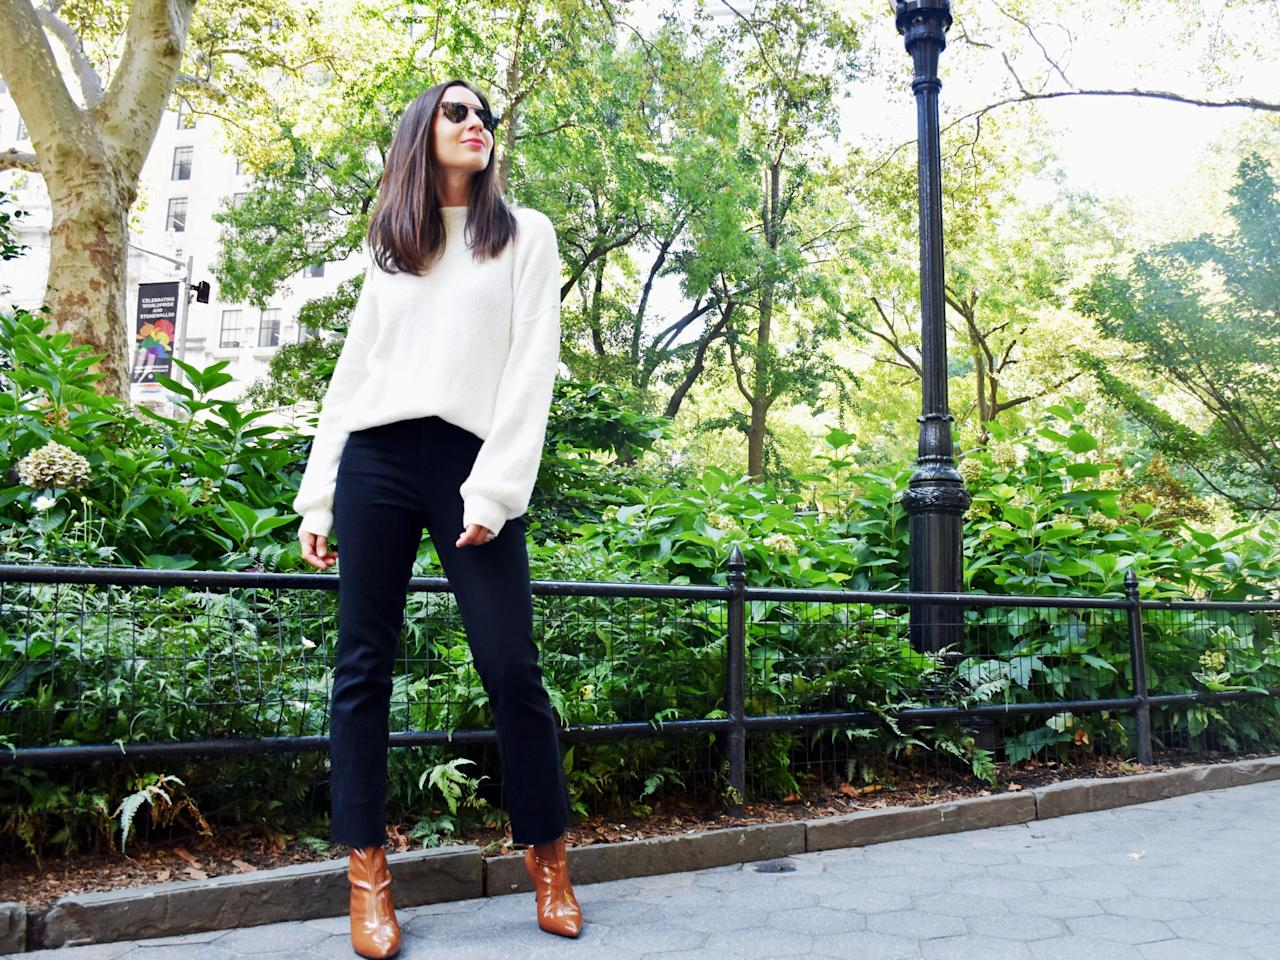 <p>Think outside the box when it comes to a wear-everywhere pair of boots. A brown patent style is a fashion-forward alternative to regular leather or black. </p> <p><em>On Dana: POPSUGAR at Kohl's sweater and jeans, Stuart Weitzman boots, and Illesteva sunglasses.</em></p>